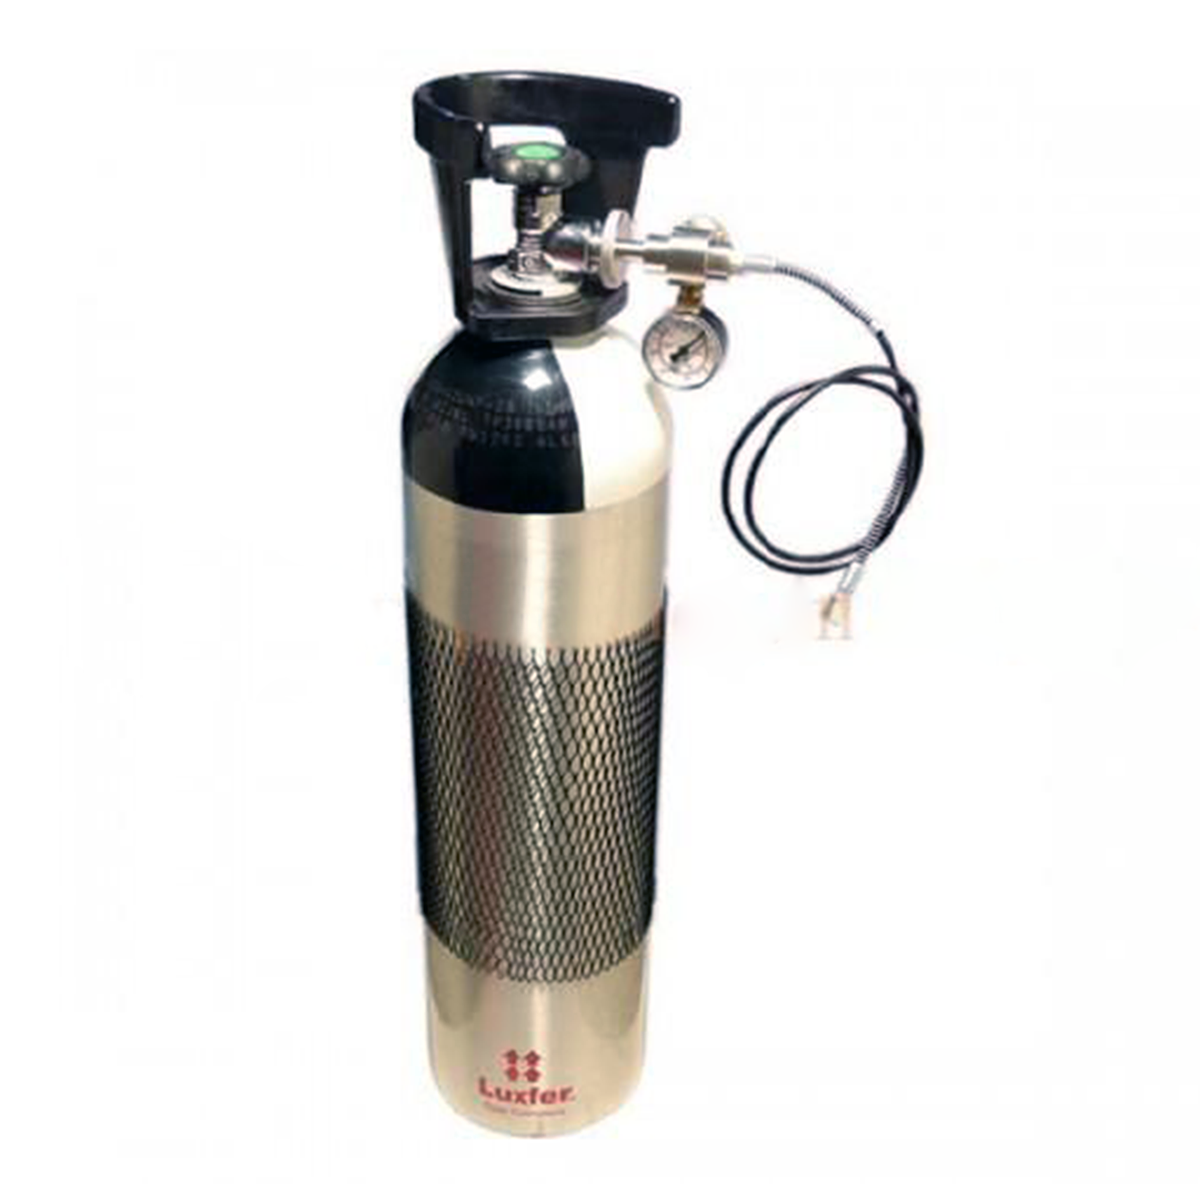 Luxfer Aluminum 10 Liters Tank WP 200 BAR with 200/300 DIN Valve with Fill Kit (The Economical Fill Station)